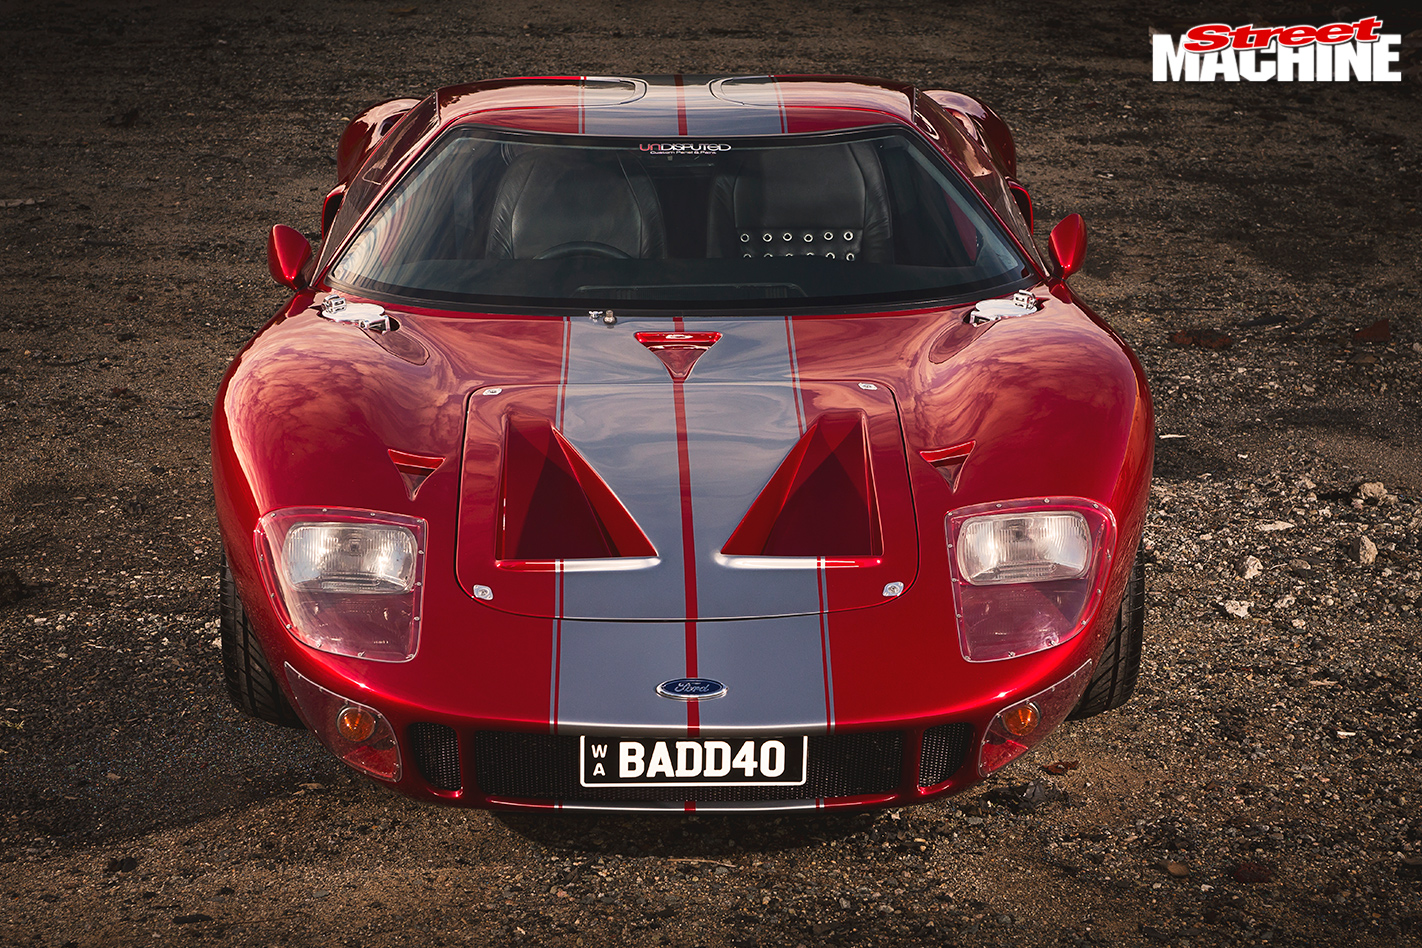 FORD BOSS V8-POWERED 2014 ROARING FORTIES GT40